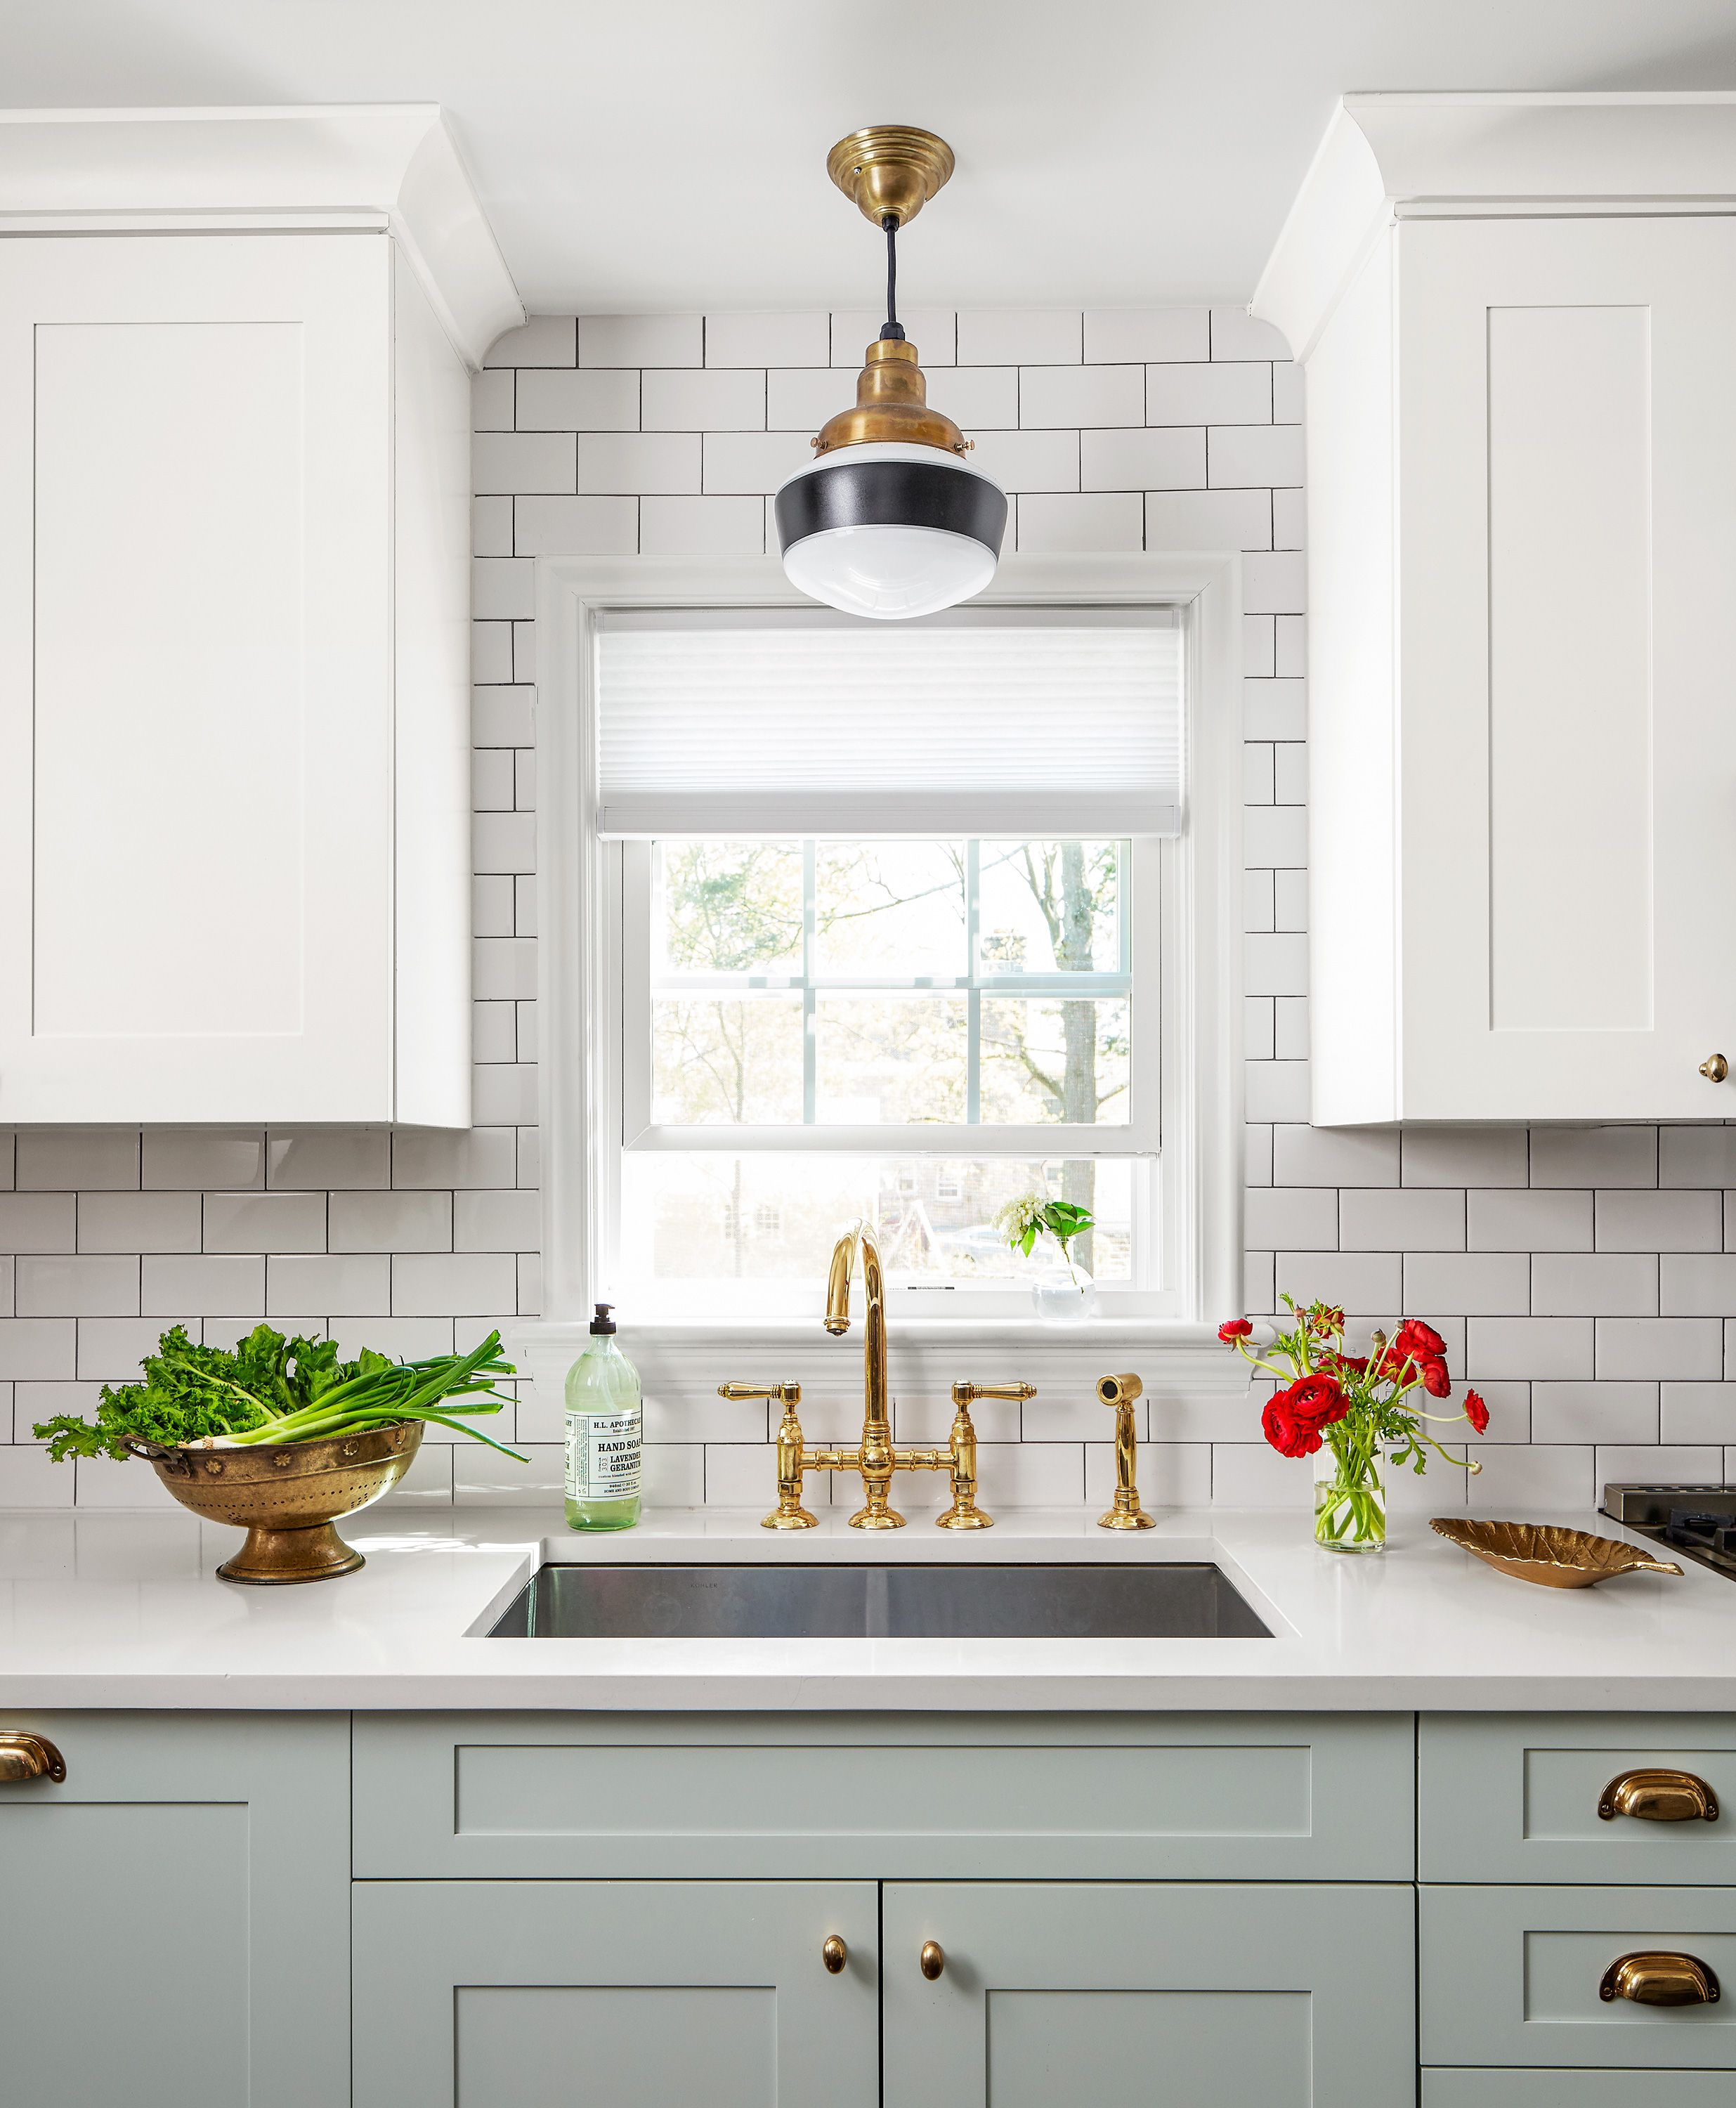 A Brass Faucet And Cabinet Hardware Offer A Dramatic Contrast To The Neutral Surfaces In The Kitch Neutral Kitchen Designs Kitchen Remodel Kitchen Inspirations